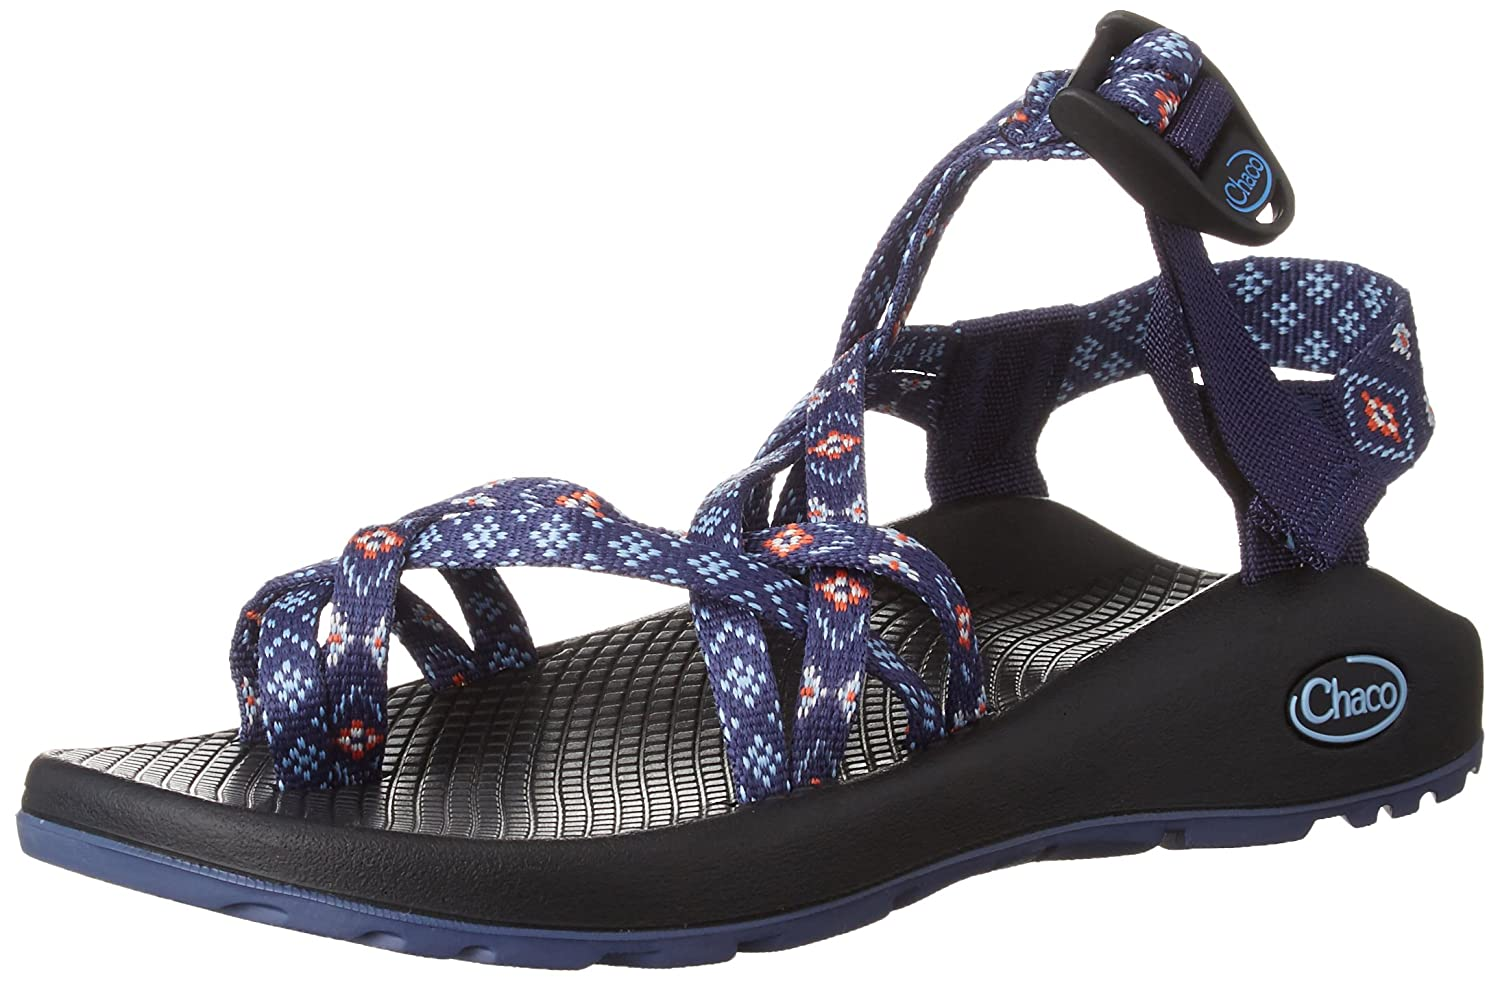 Chaco Women's Zx2 Classic Athletic Sandal B01H4XBFYU 10 M US|Wink Blue